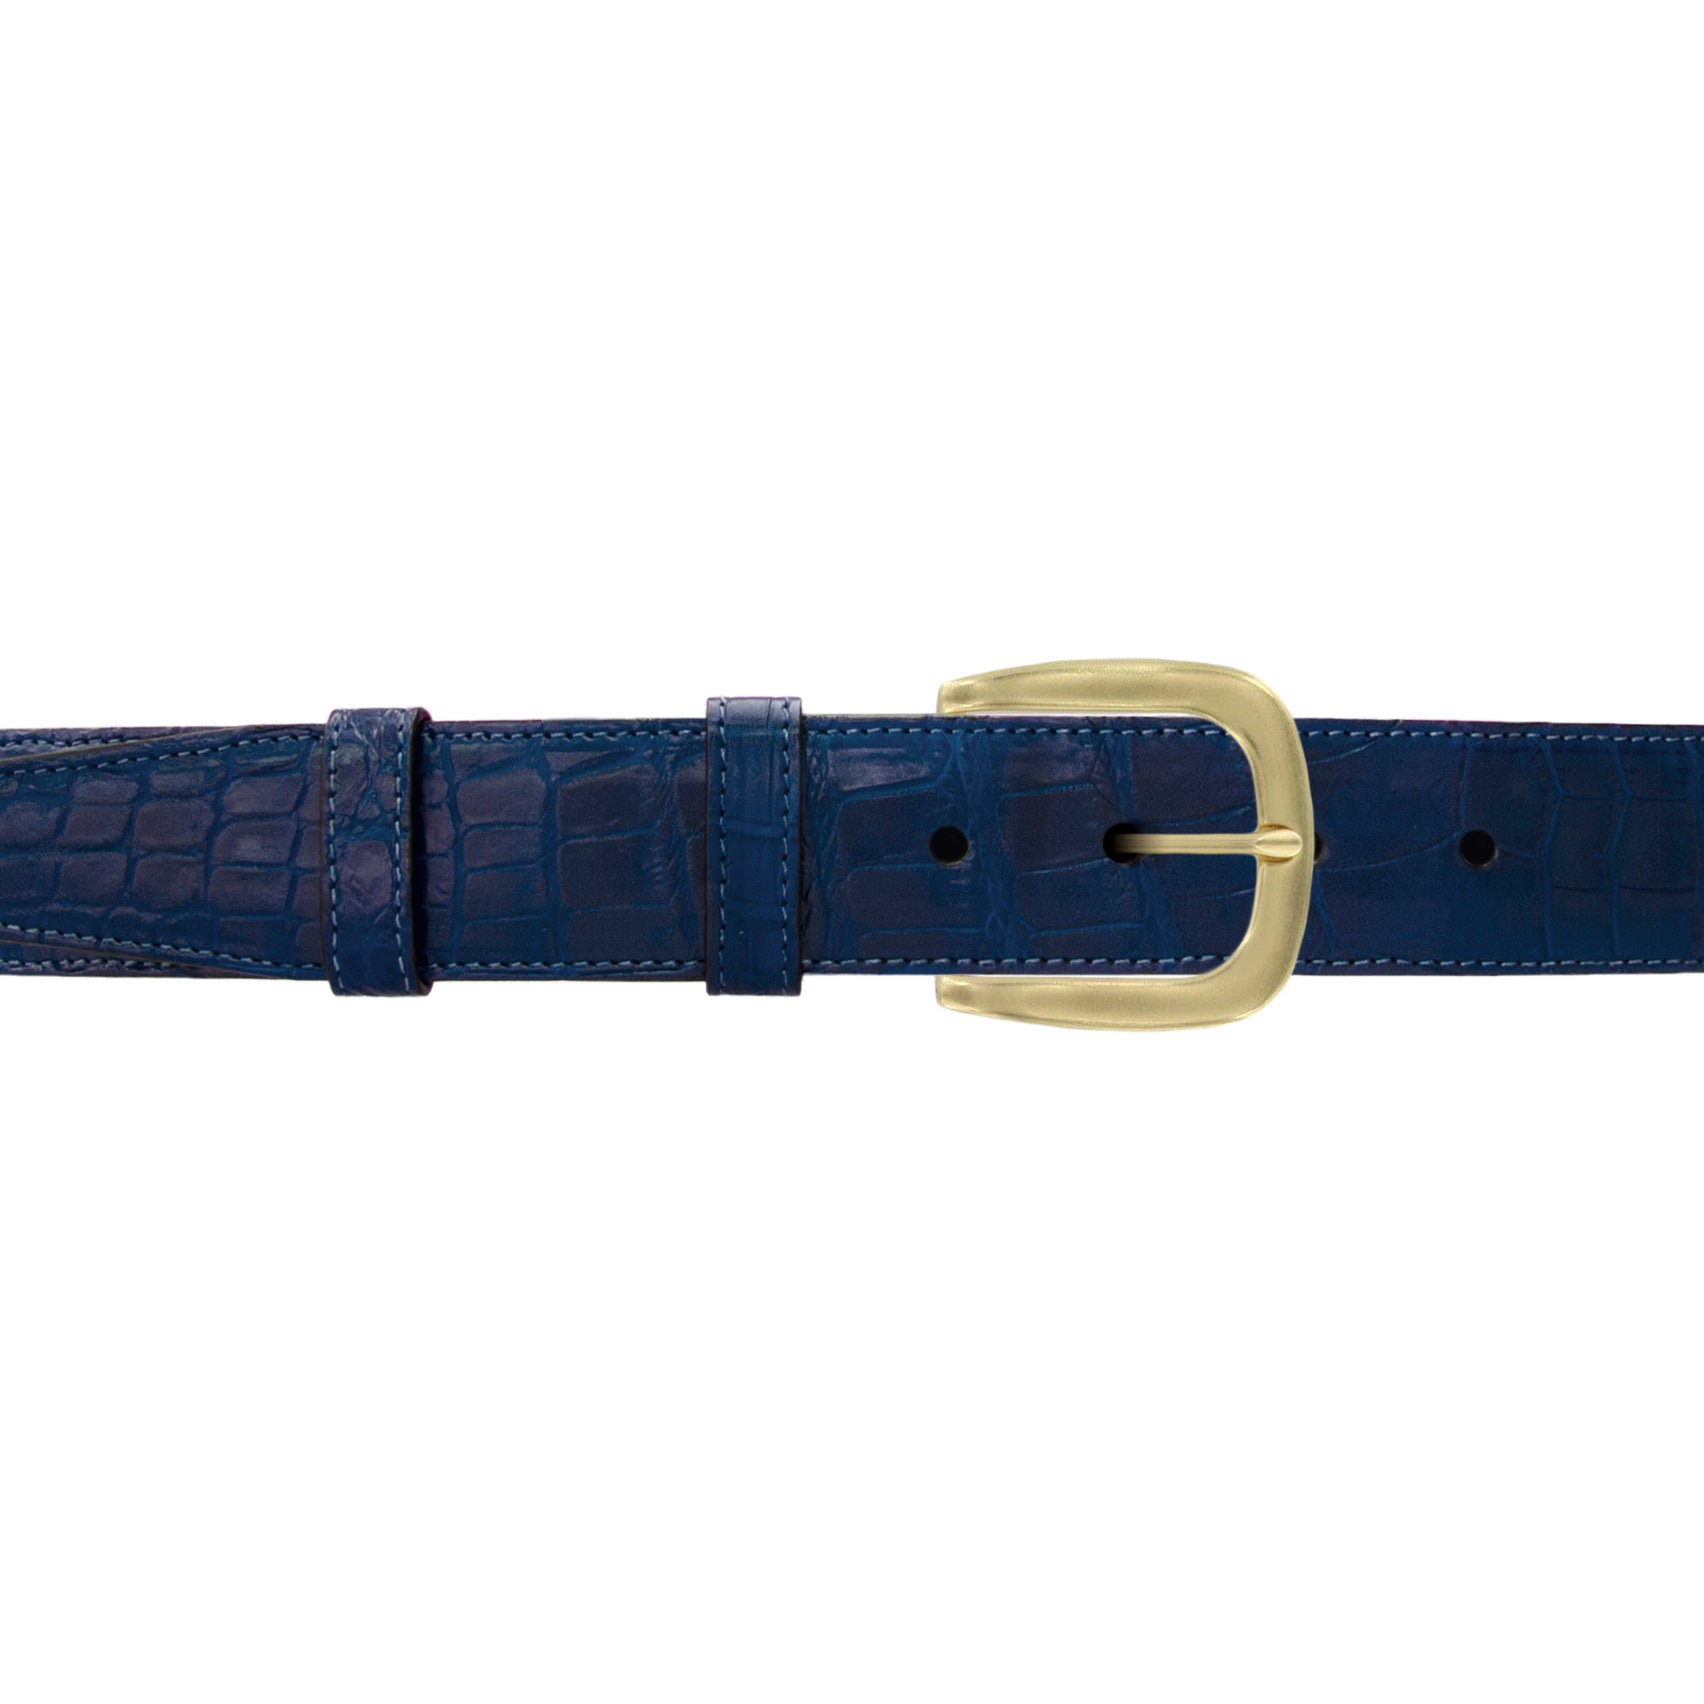 "1 12"" Royal Seasonal Belt with Oxford Cocktail Buckle in Brass"